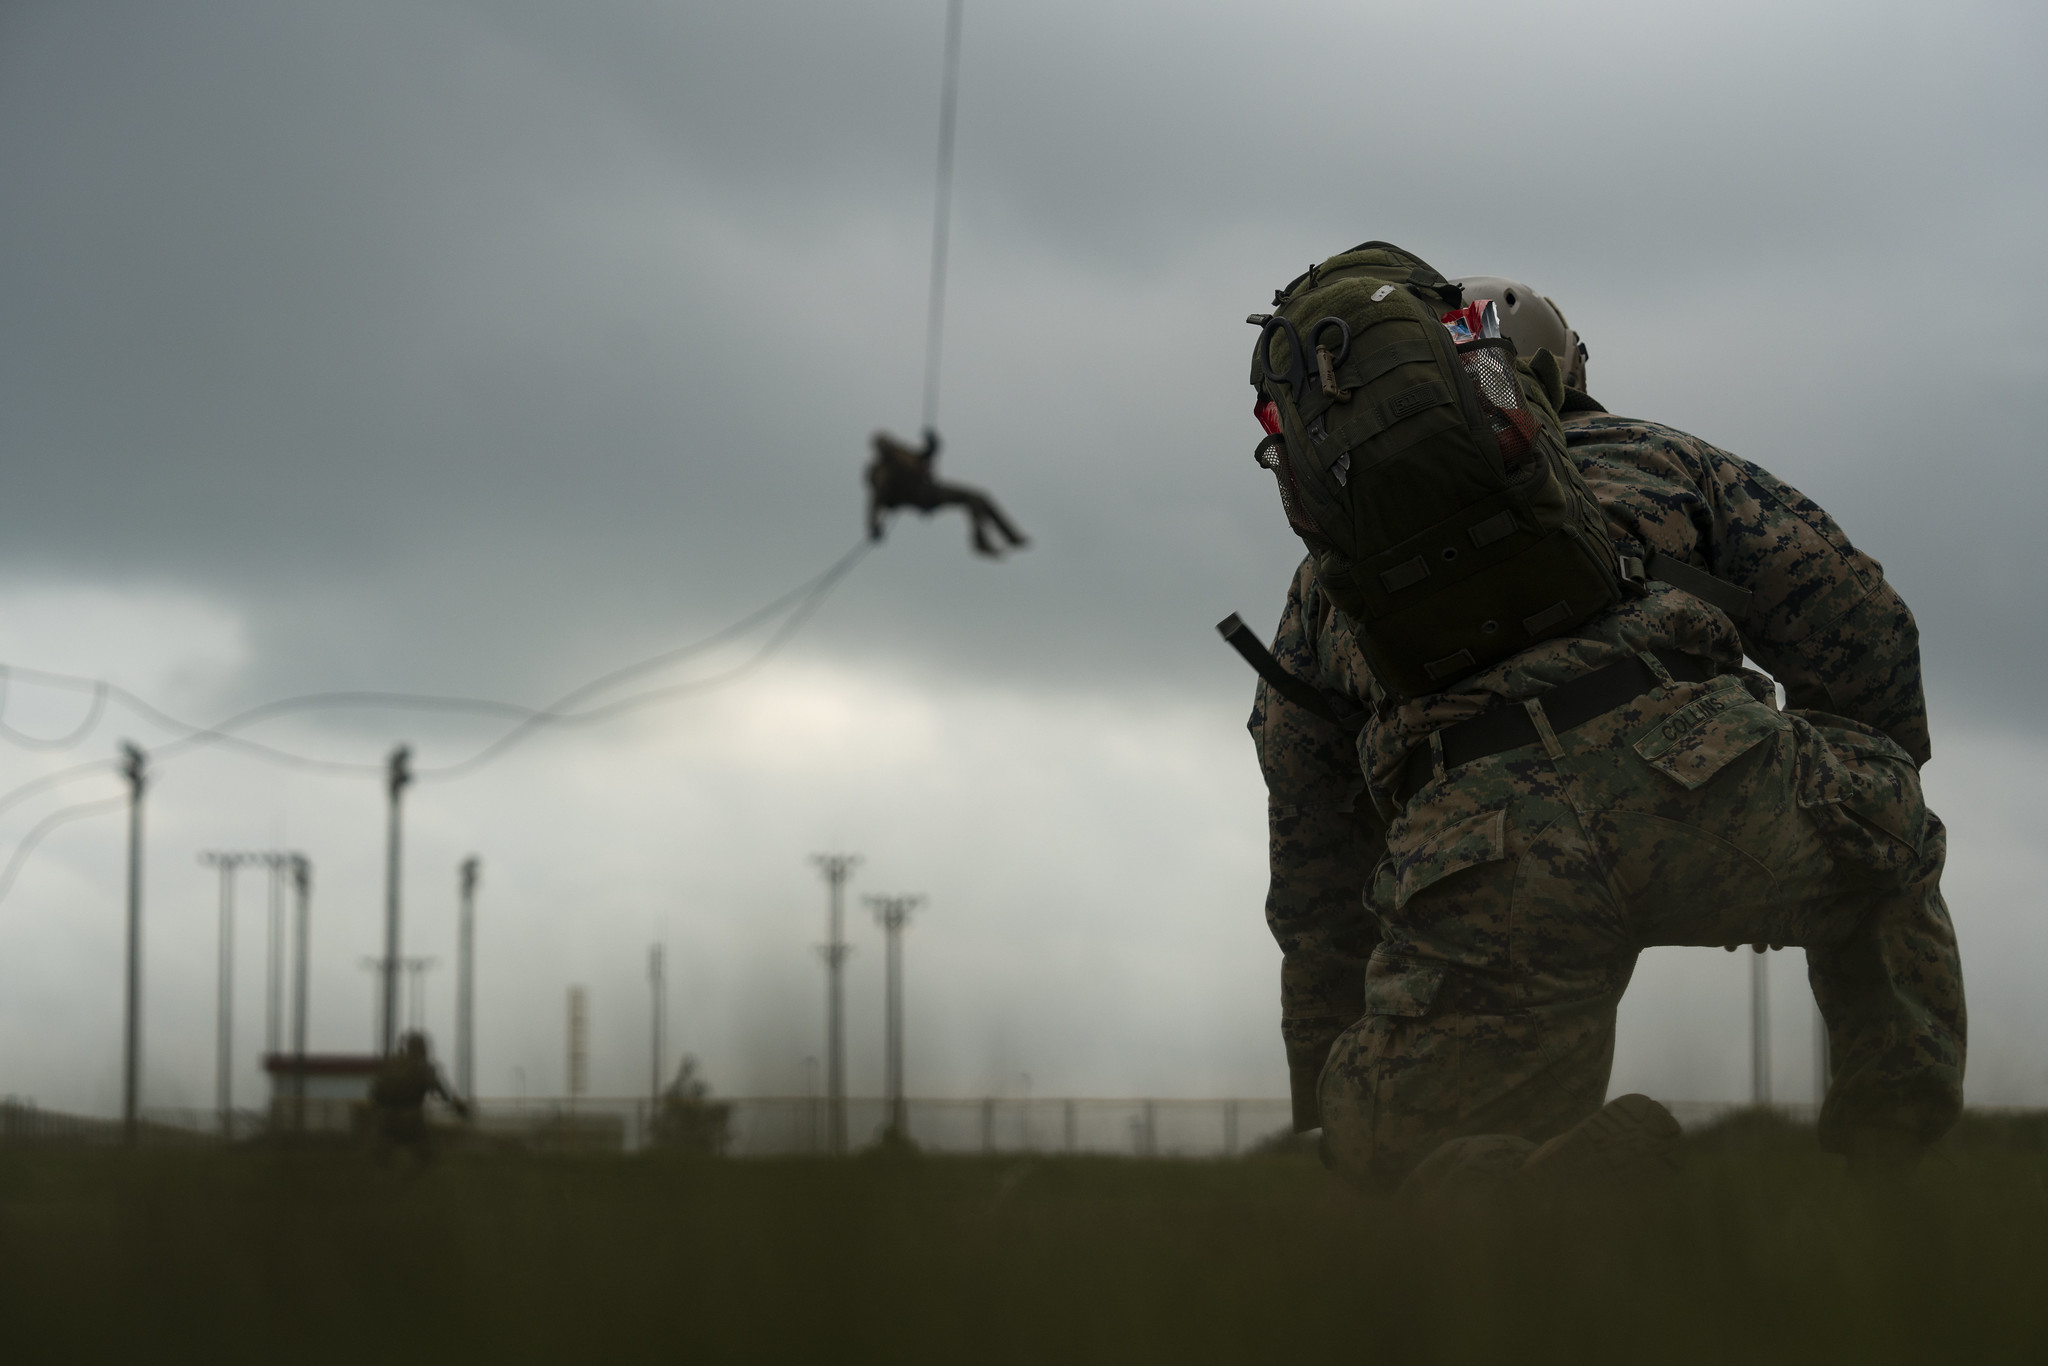 A U.S. Navy corpsman with Expeditionary Operations Training Group, III Marine Expeditionary Force Information Group, supervises students performing helicopter rope suspension technique training at the parade deck on Camp Hansen, Okinawa, Japan, Aug. 14, 2019. (Lance Cpl. Andrew R. Bray/Marine Corps)